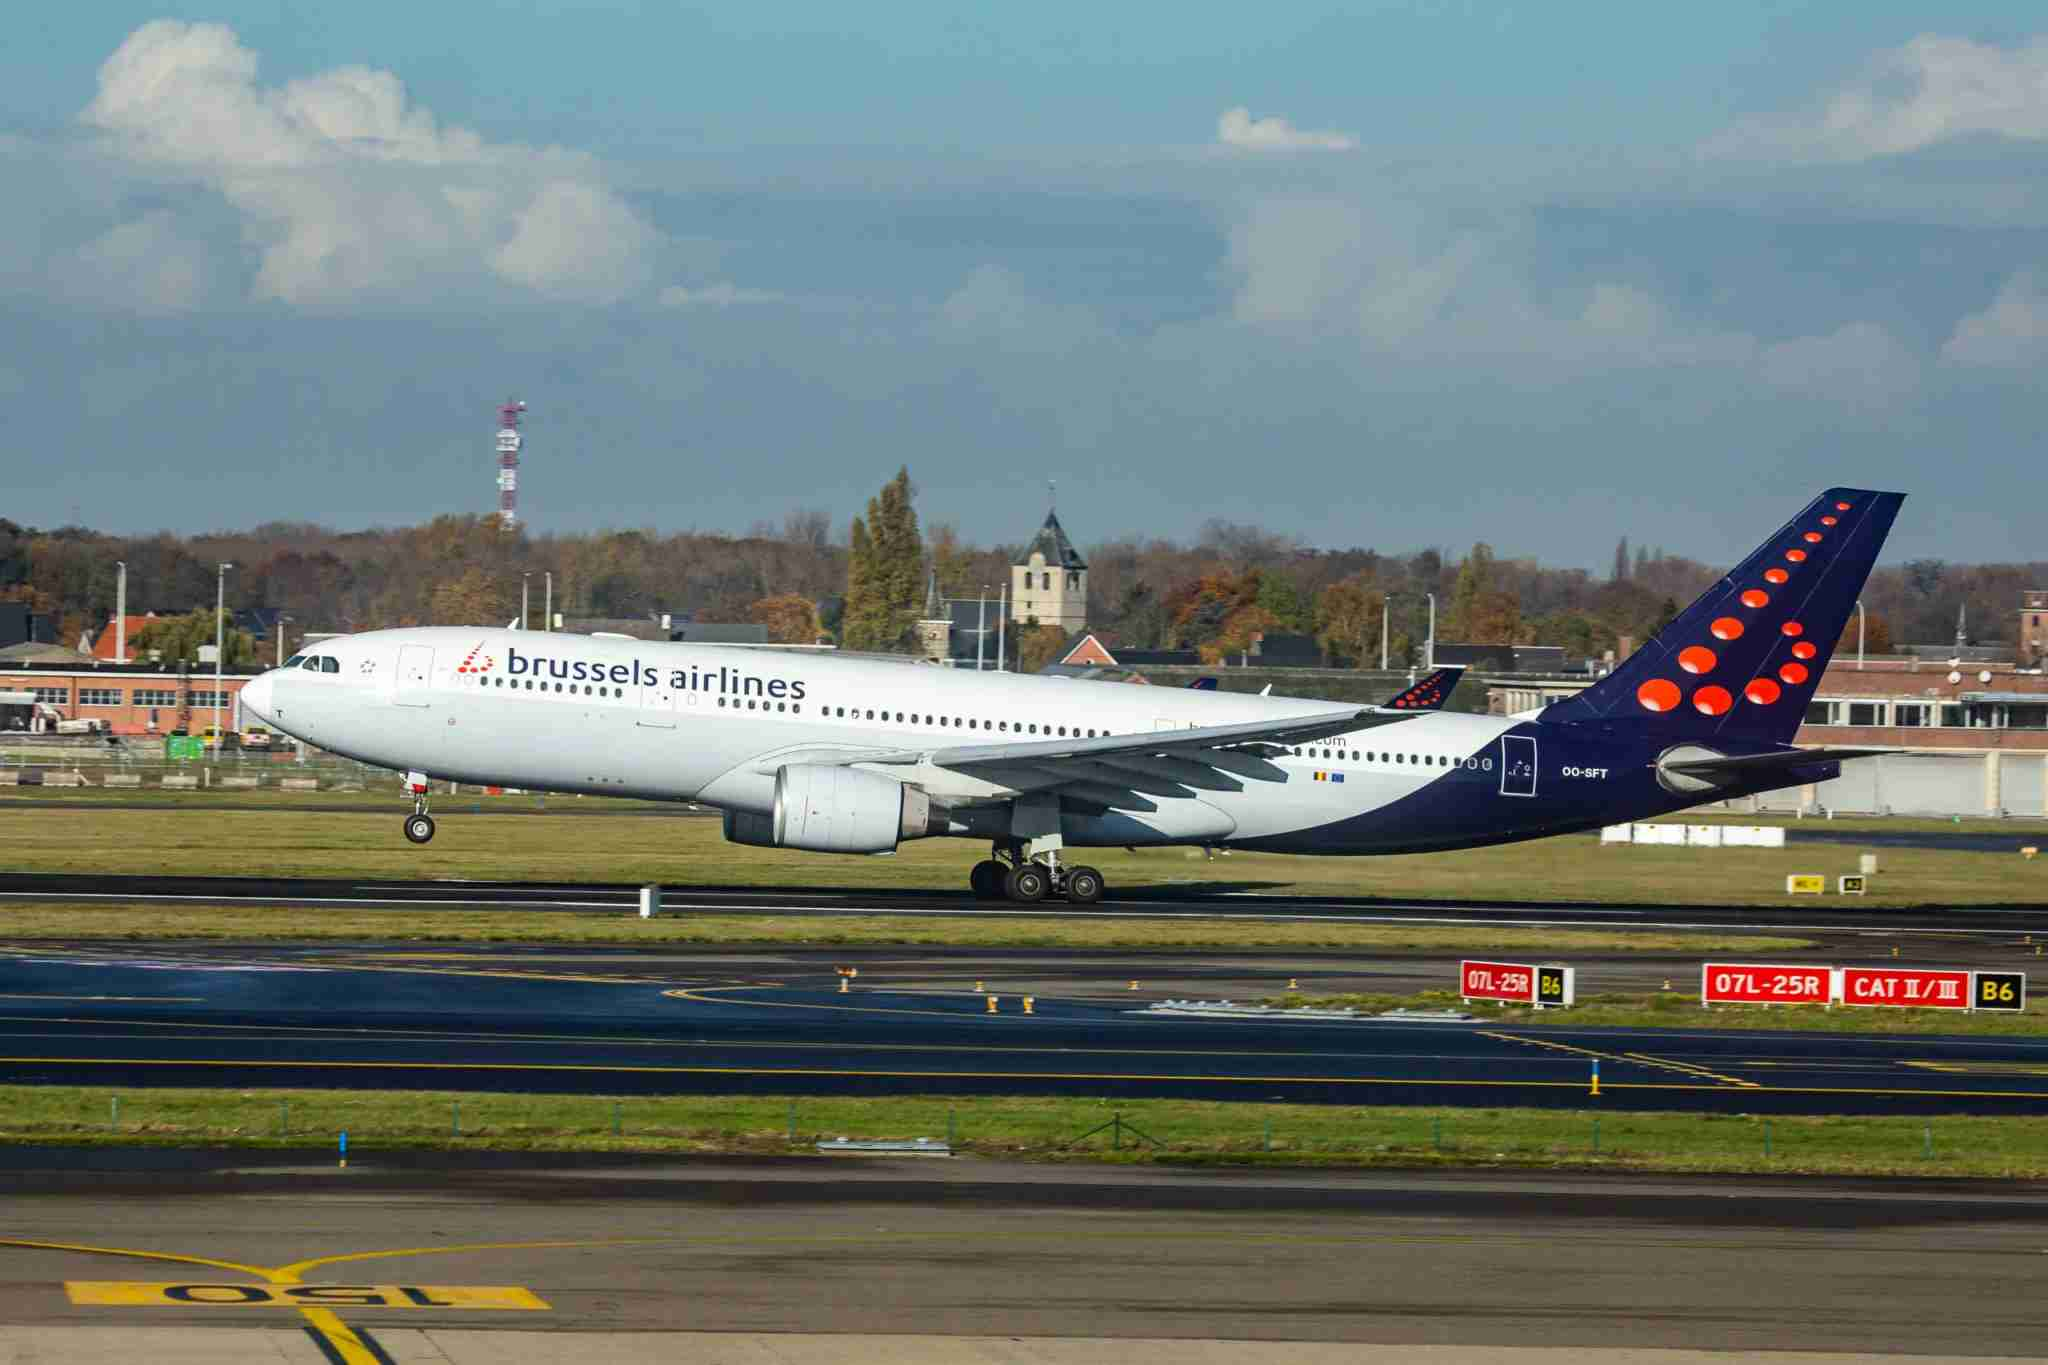 Brussels Airlines Airbus A330-200 aircraft as seen during take off from Brussels on Nov. 19, 2019. (Photo by Nicolas Economou/NurPhoto via Getty Images)